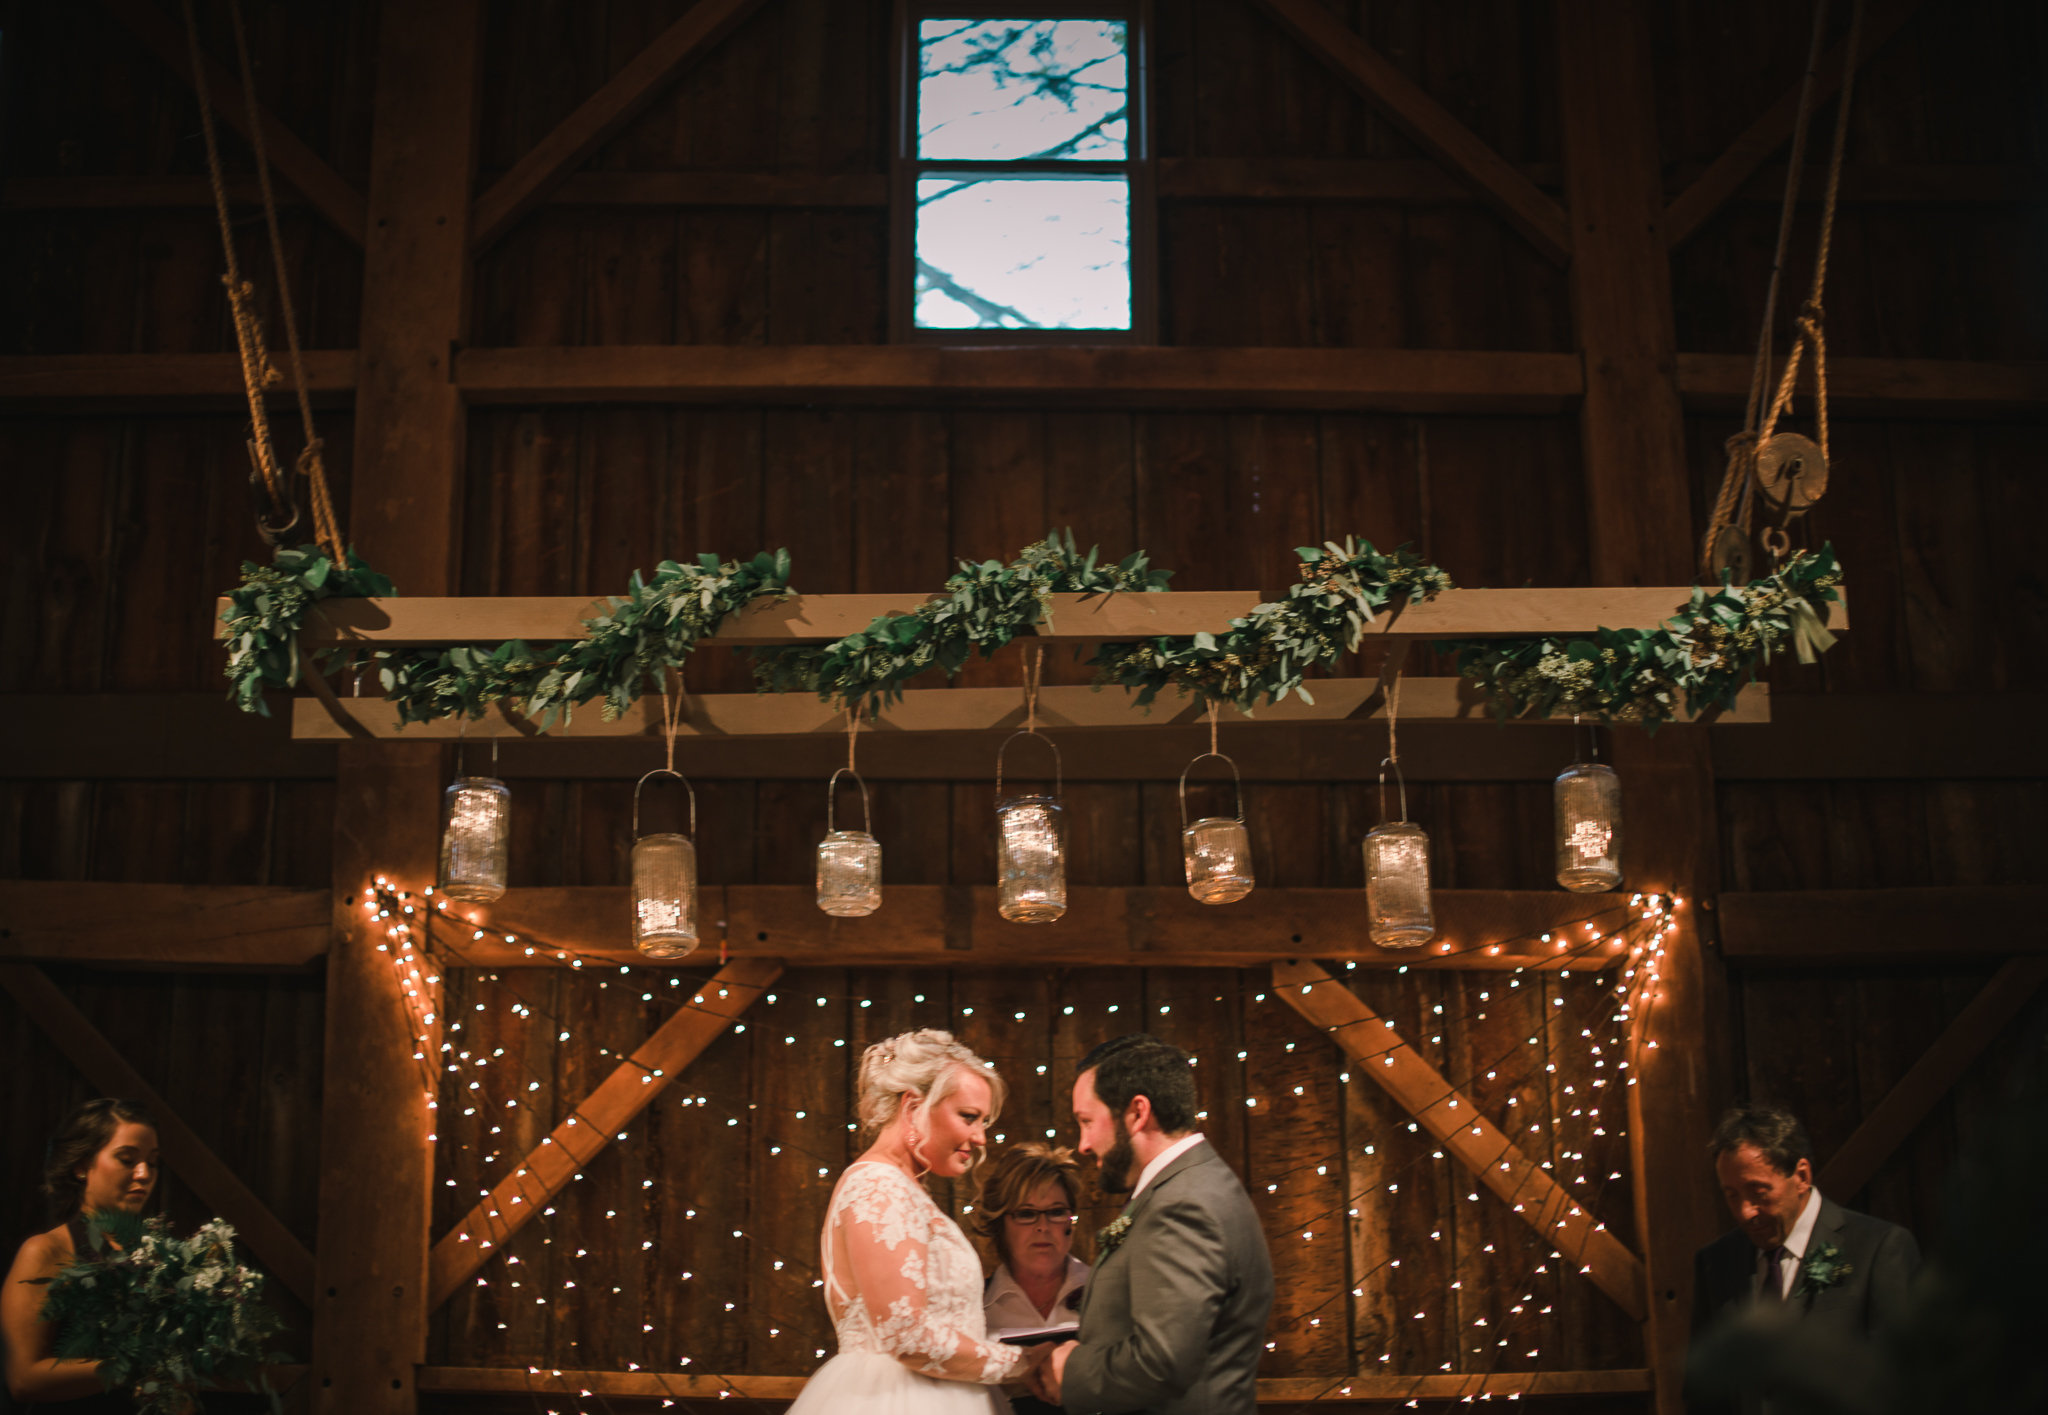 Kylee and Andrew | Wedding Preview — Love Conquers